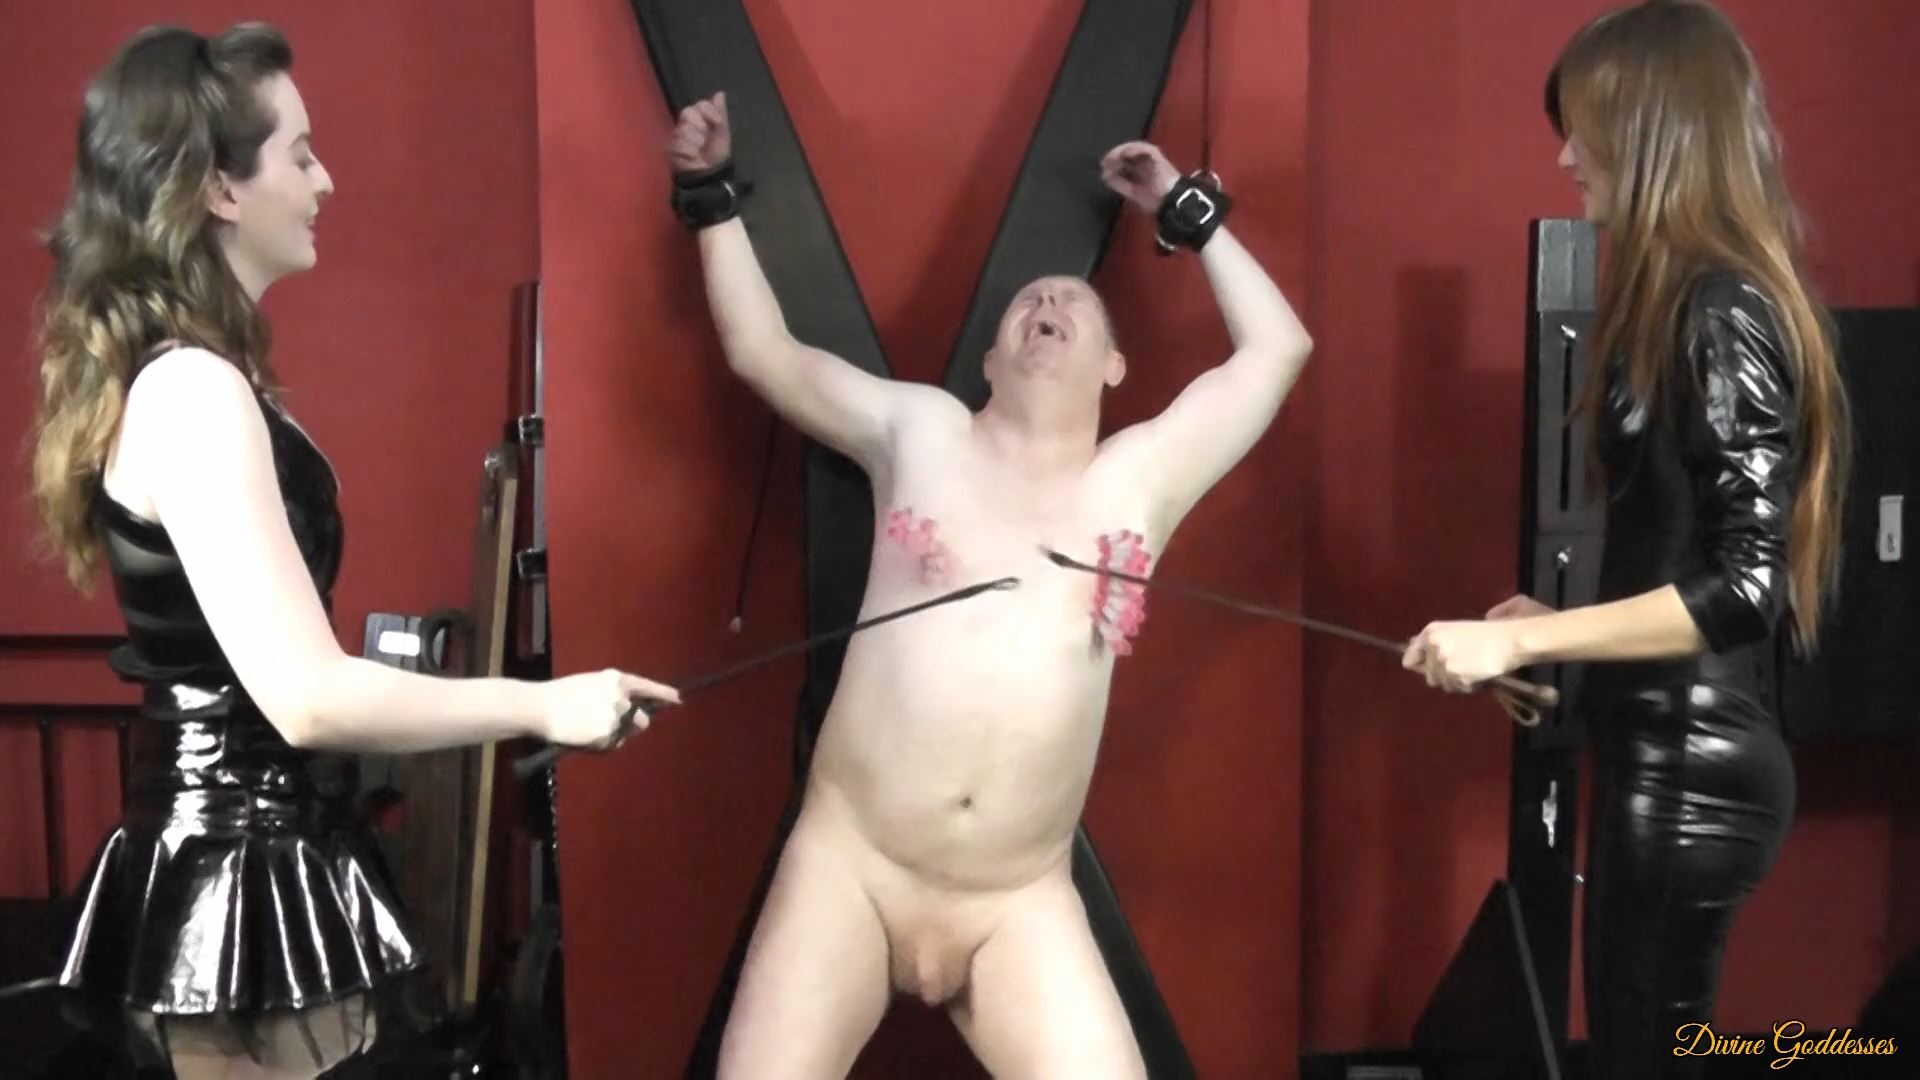 MISTRESS MARY ANN, MISTRESS PORCELAIN BEAUTY In Scene: SLAVES PEGS WHACKED OFF WITH CROPS - DIVINEGODDESSES - FULL HD/1080p/MP4